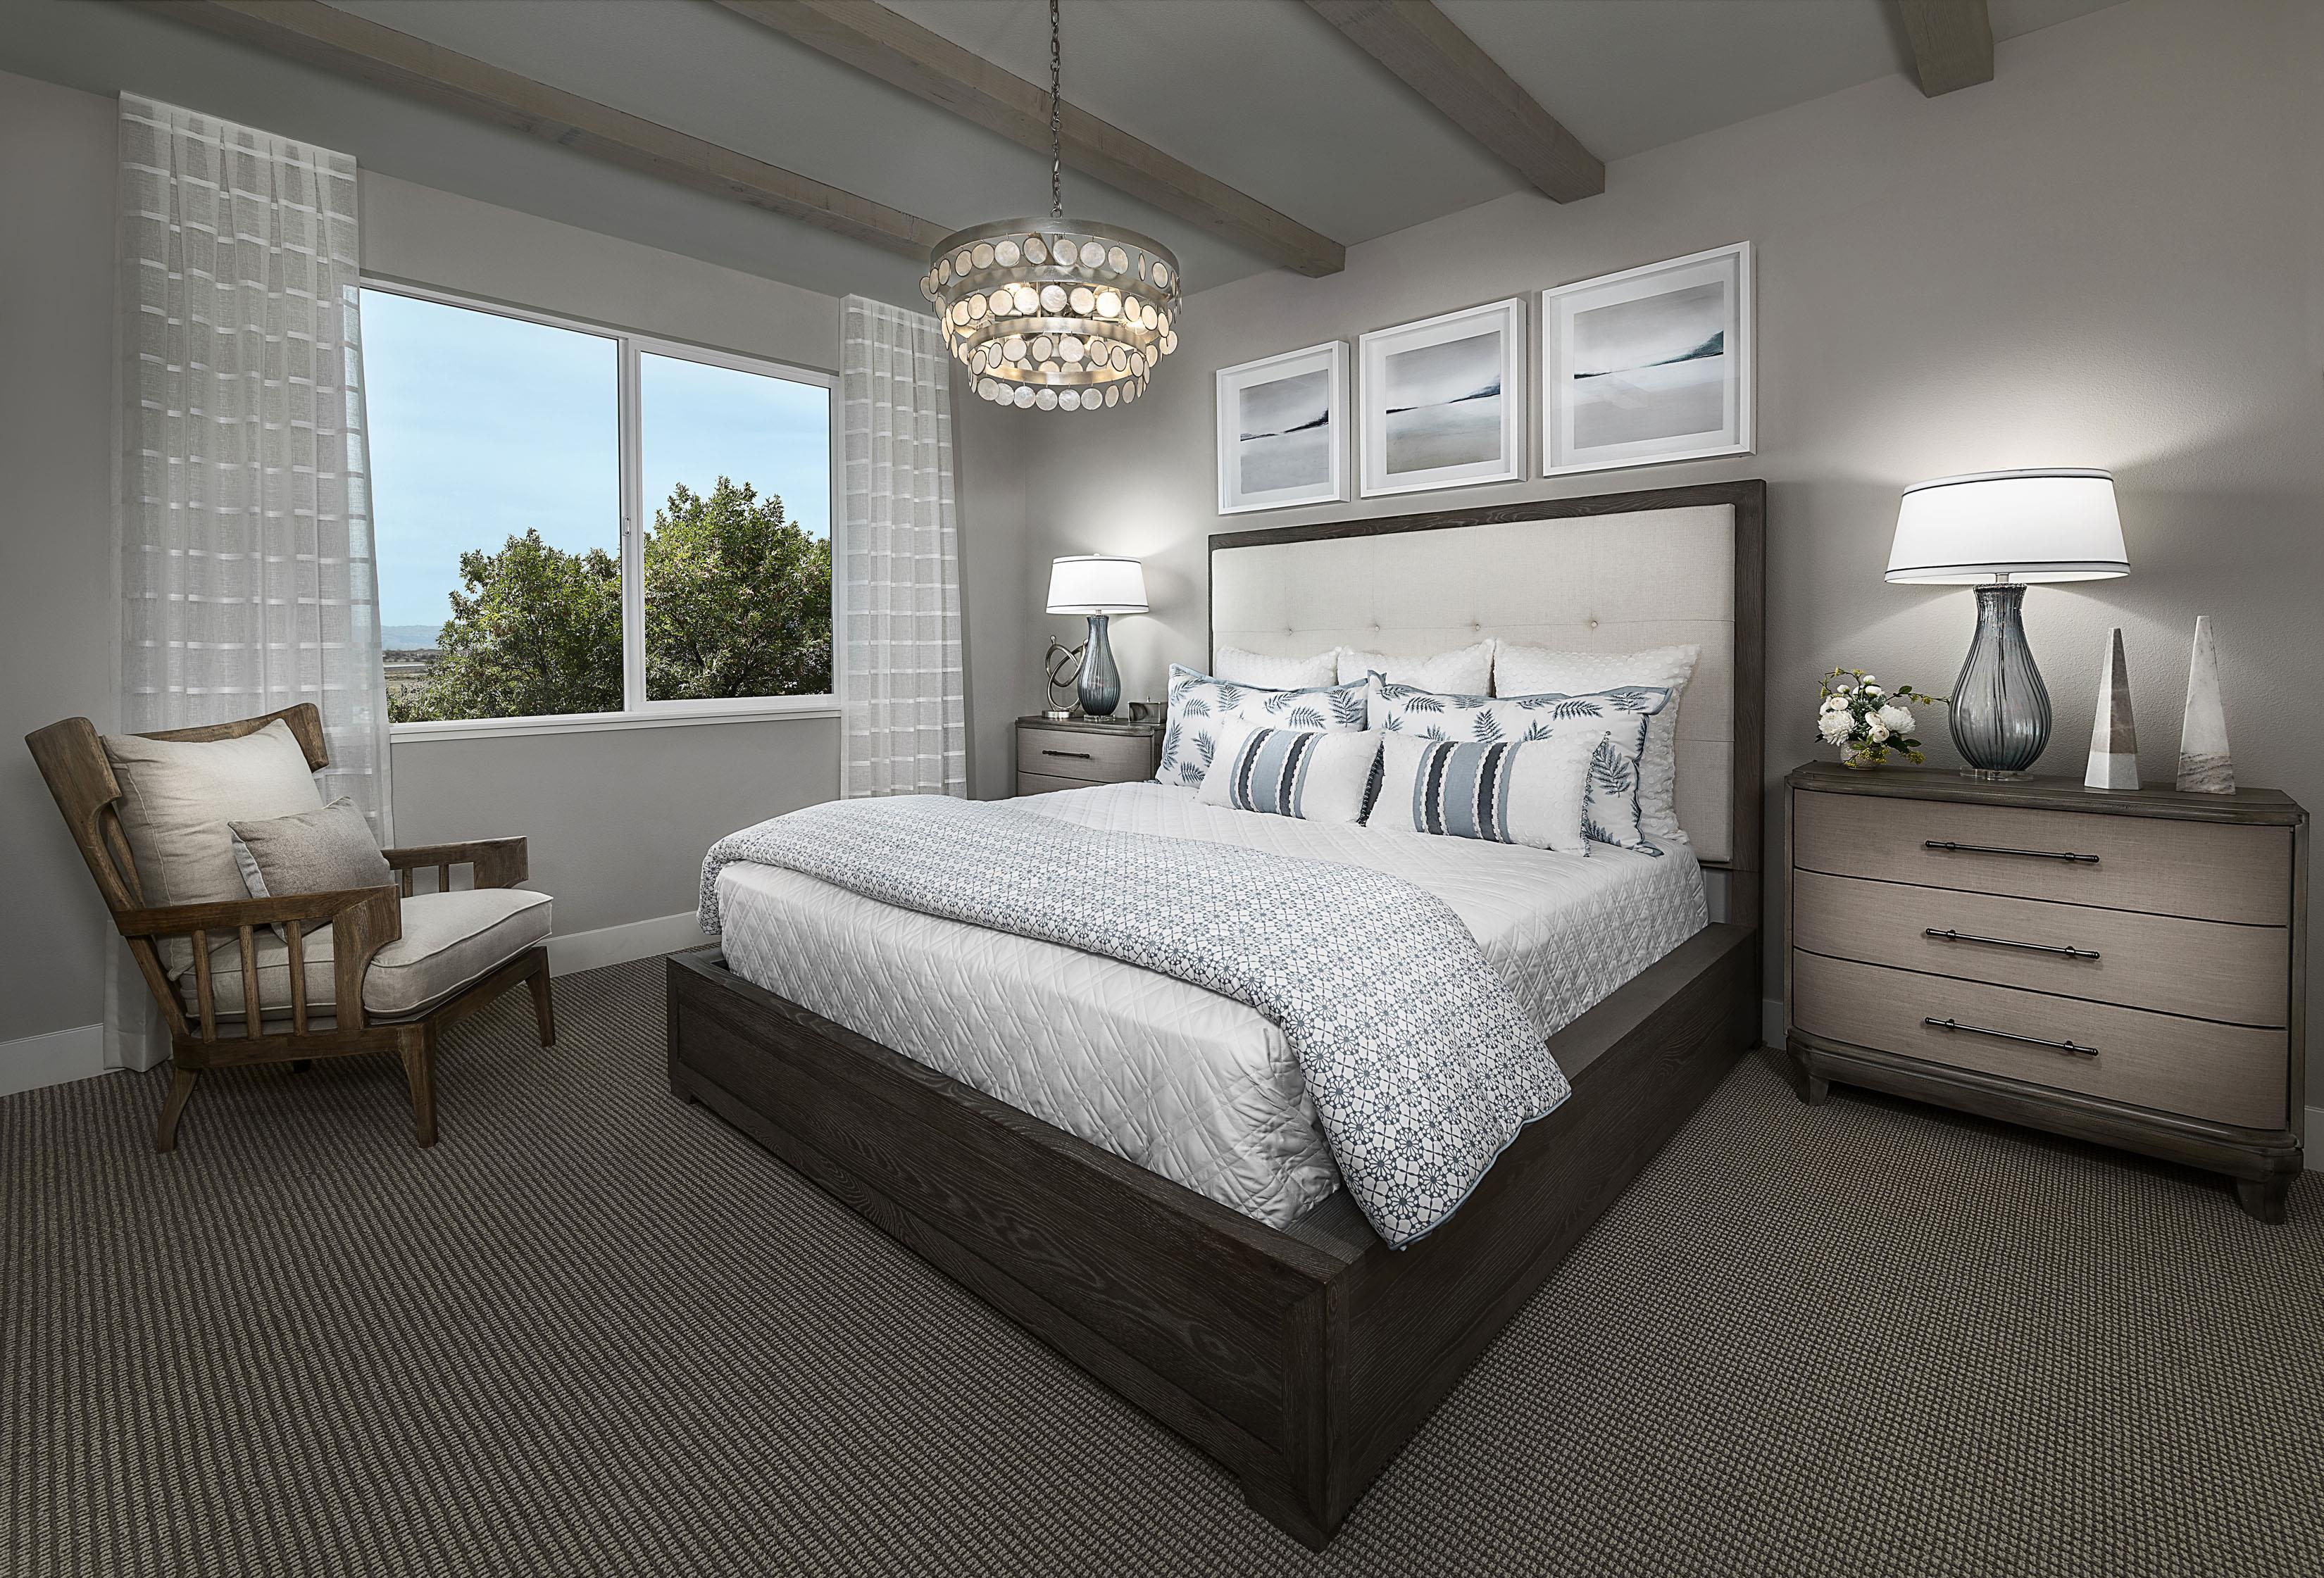 Bedroom featured in the Carousel Residence 1 By Kiper Homes in Santa Cruz, CA